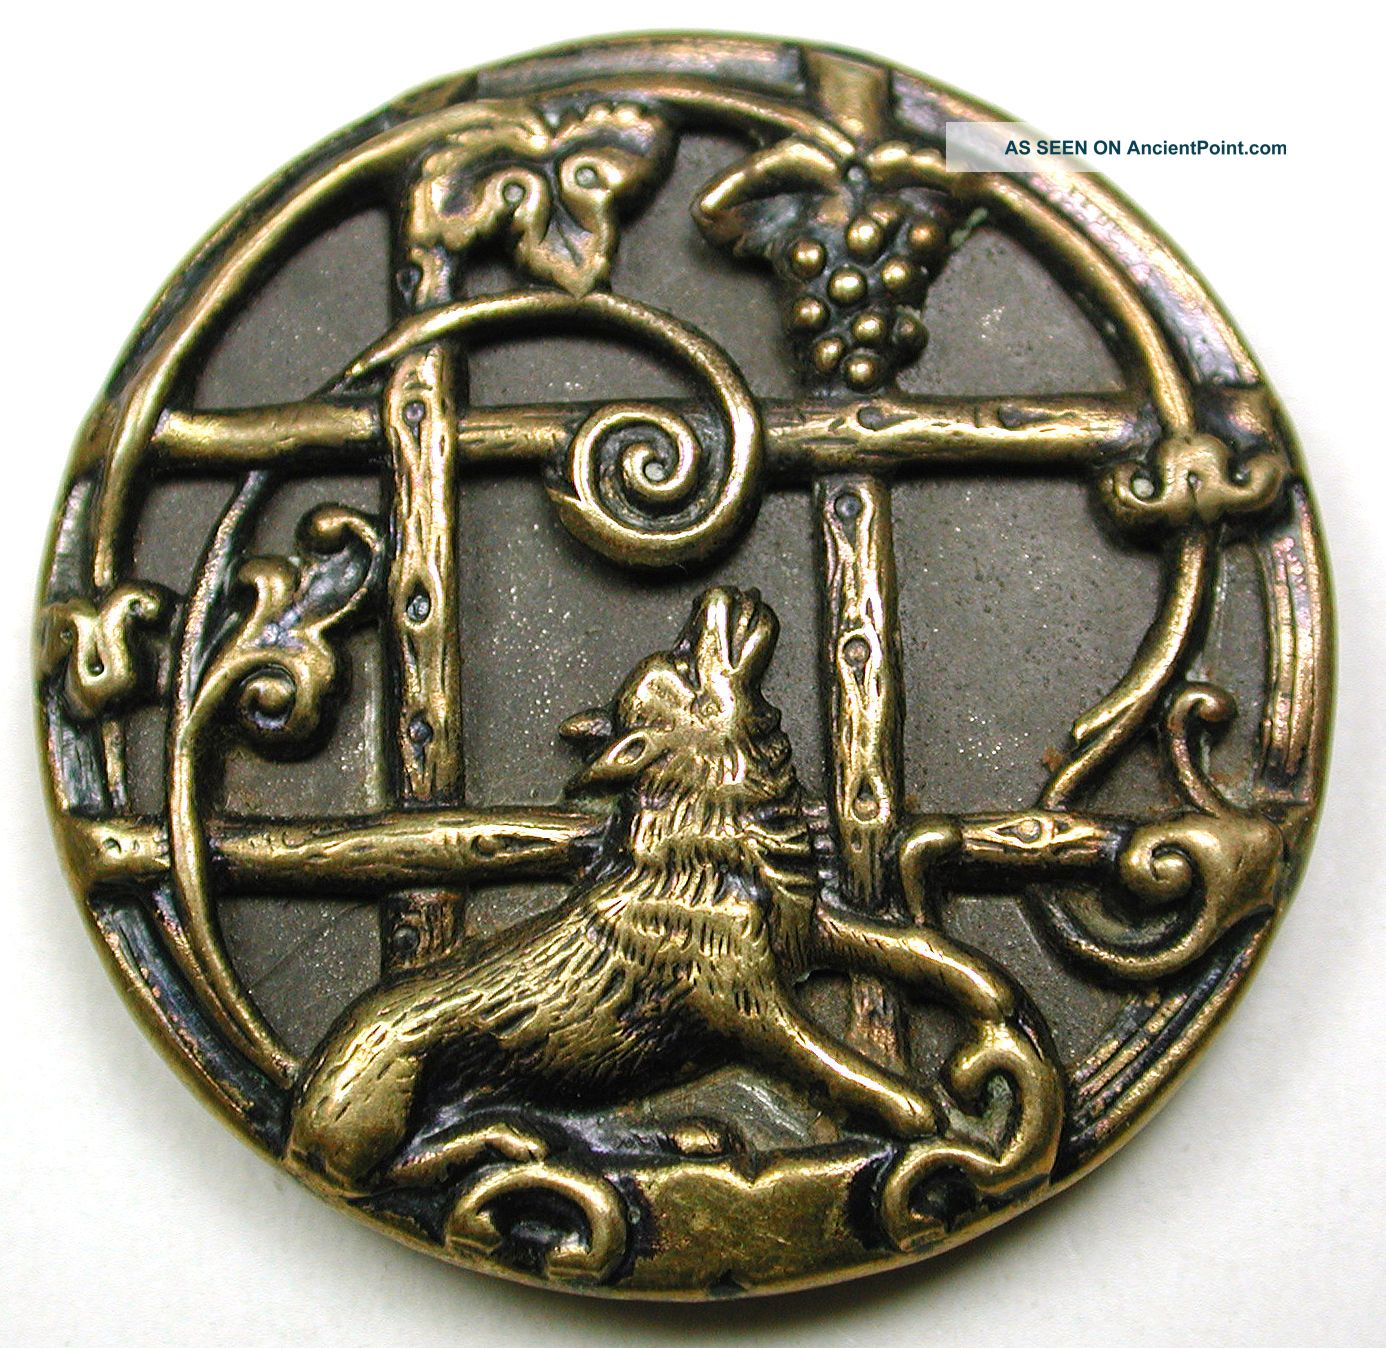 Lg Sz Antique Brass Fable Button Detailed Fox & Grapevine Scene 1 & 5/16